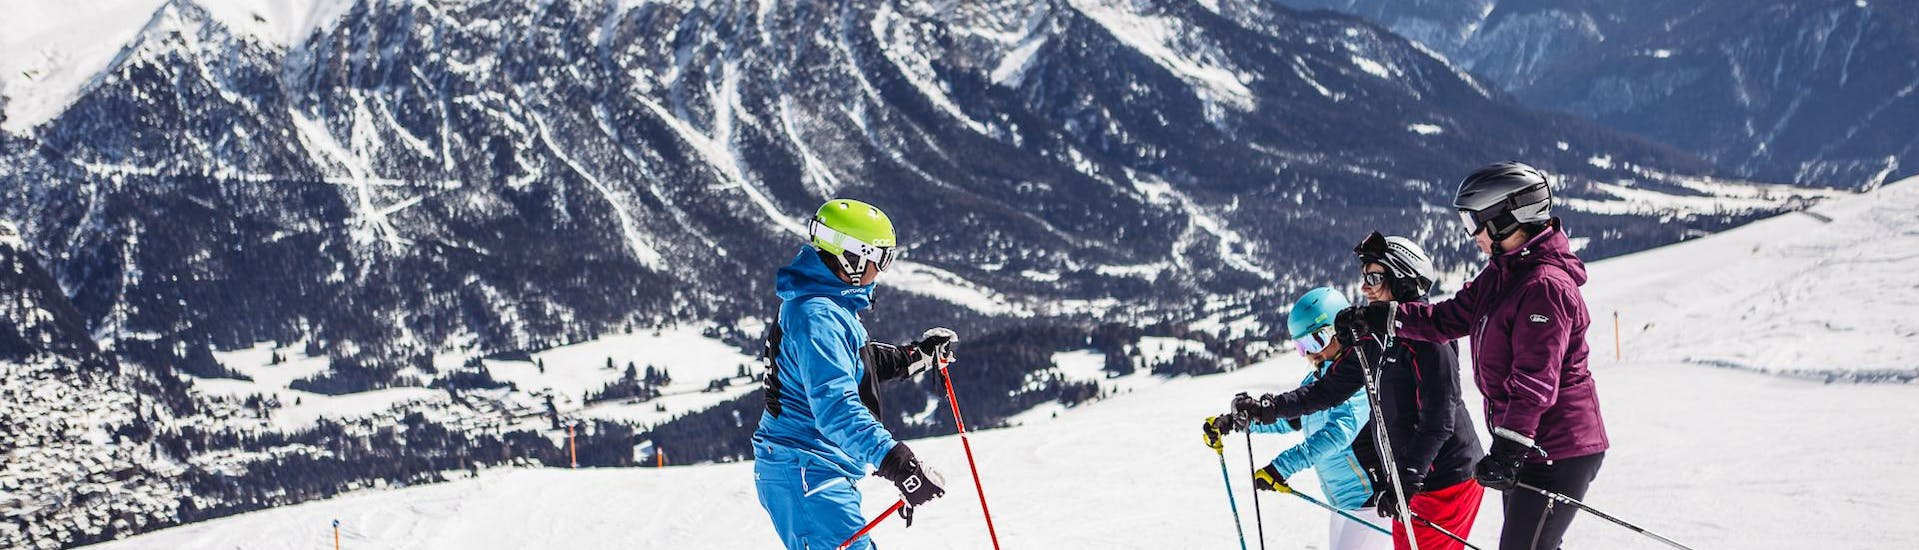 Private Ski Lessons for Groups of All Levels